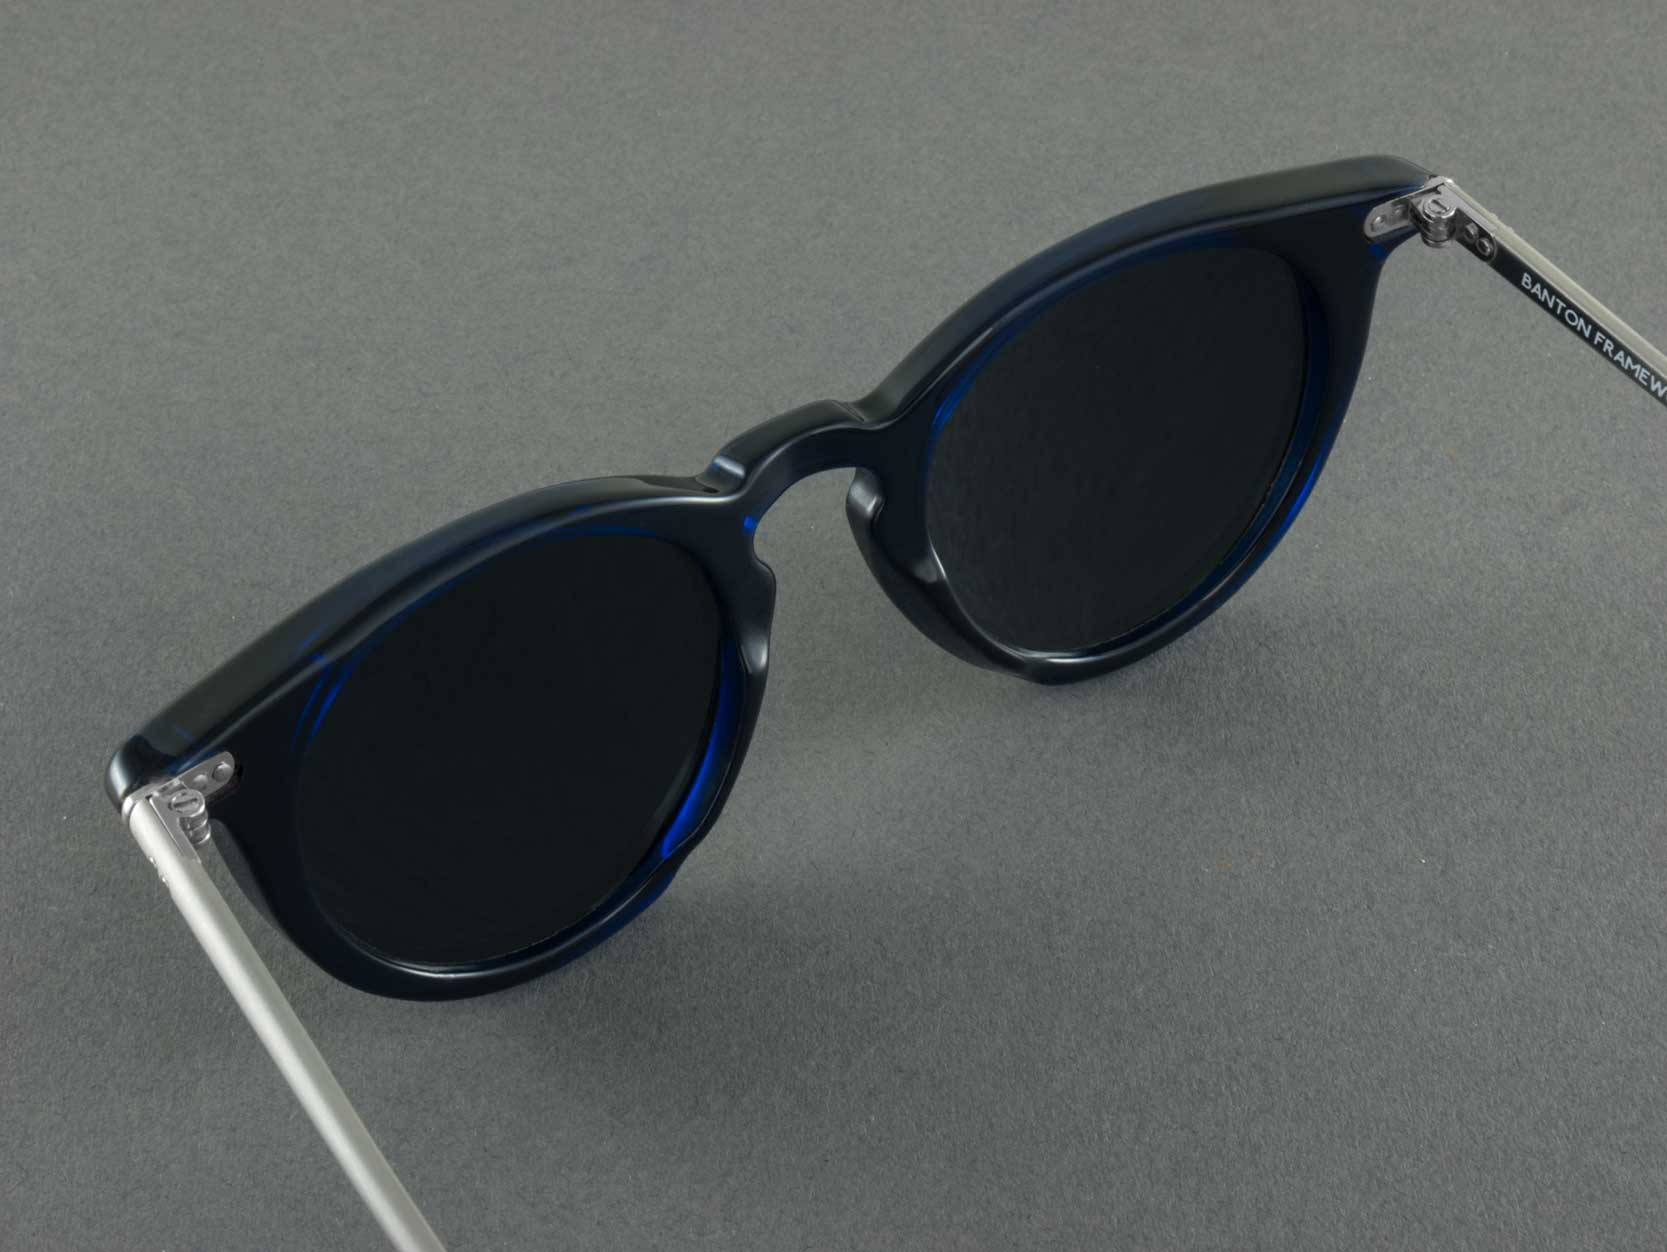 blue polarised sunglasses aerial view